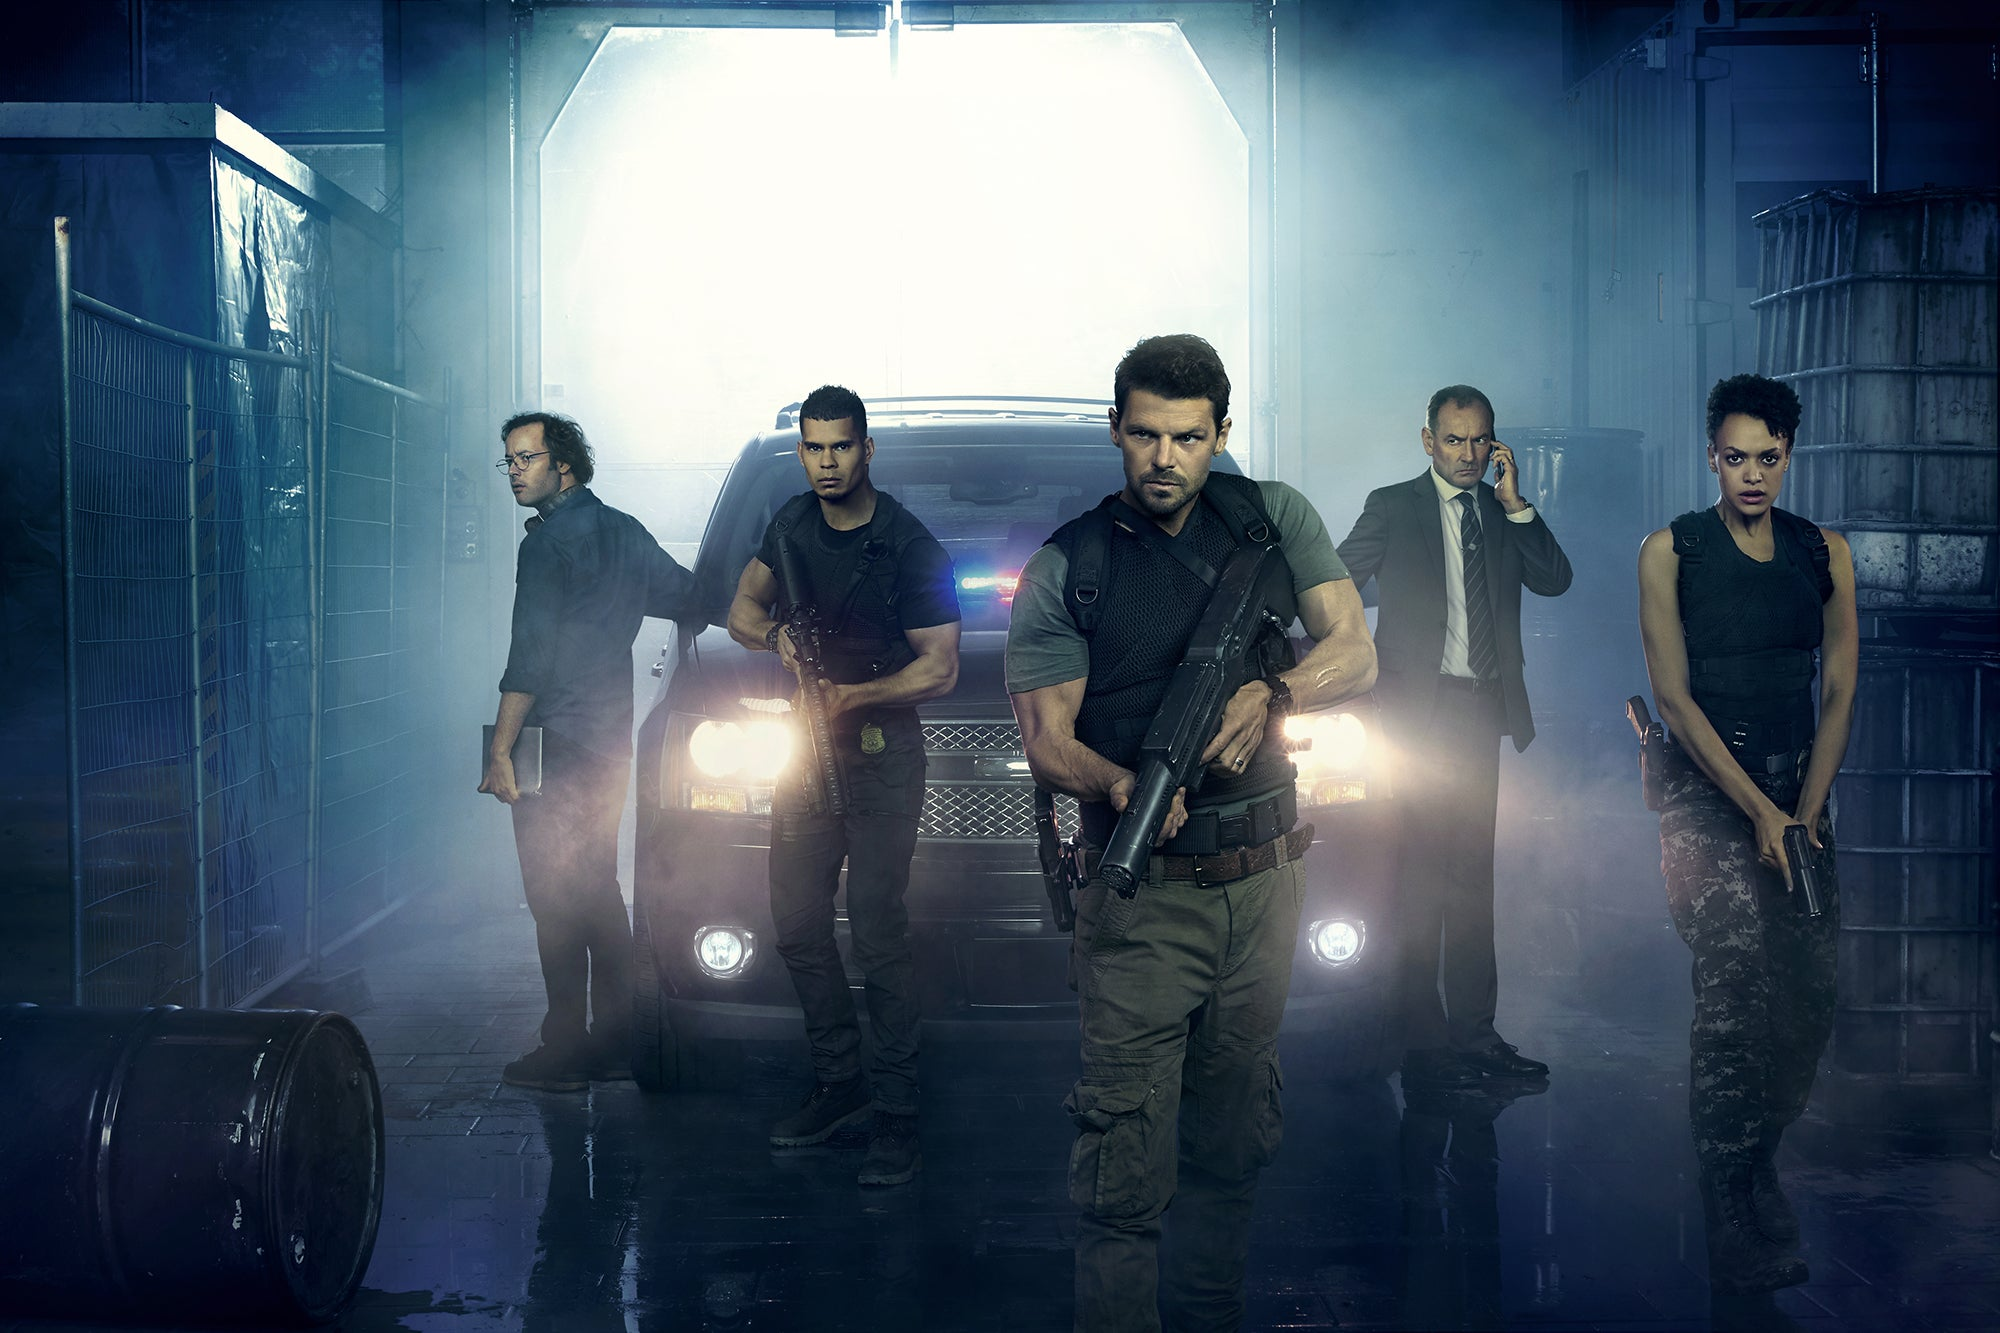 Here's a Much Closer Look at Syfy's New Alien Terrorist Show, Hunters